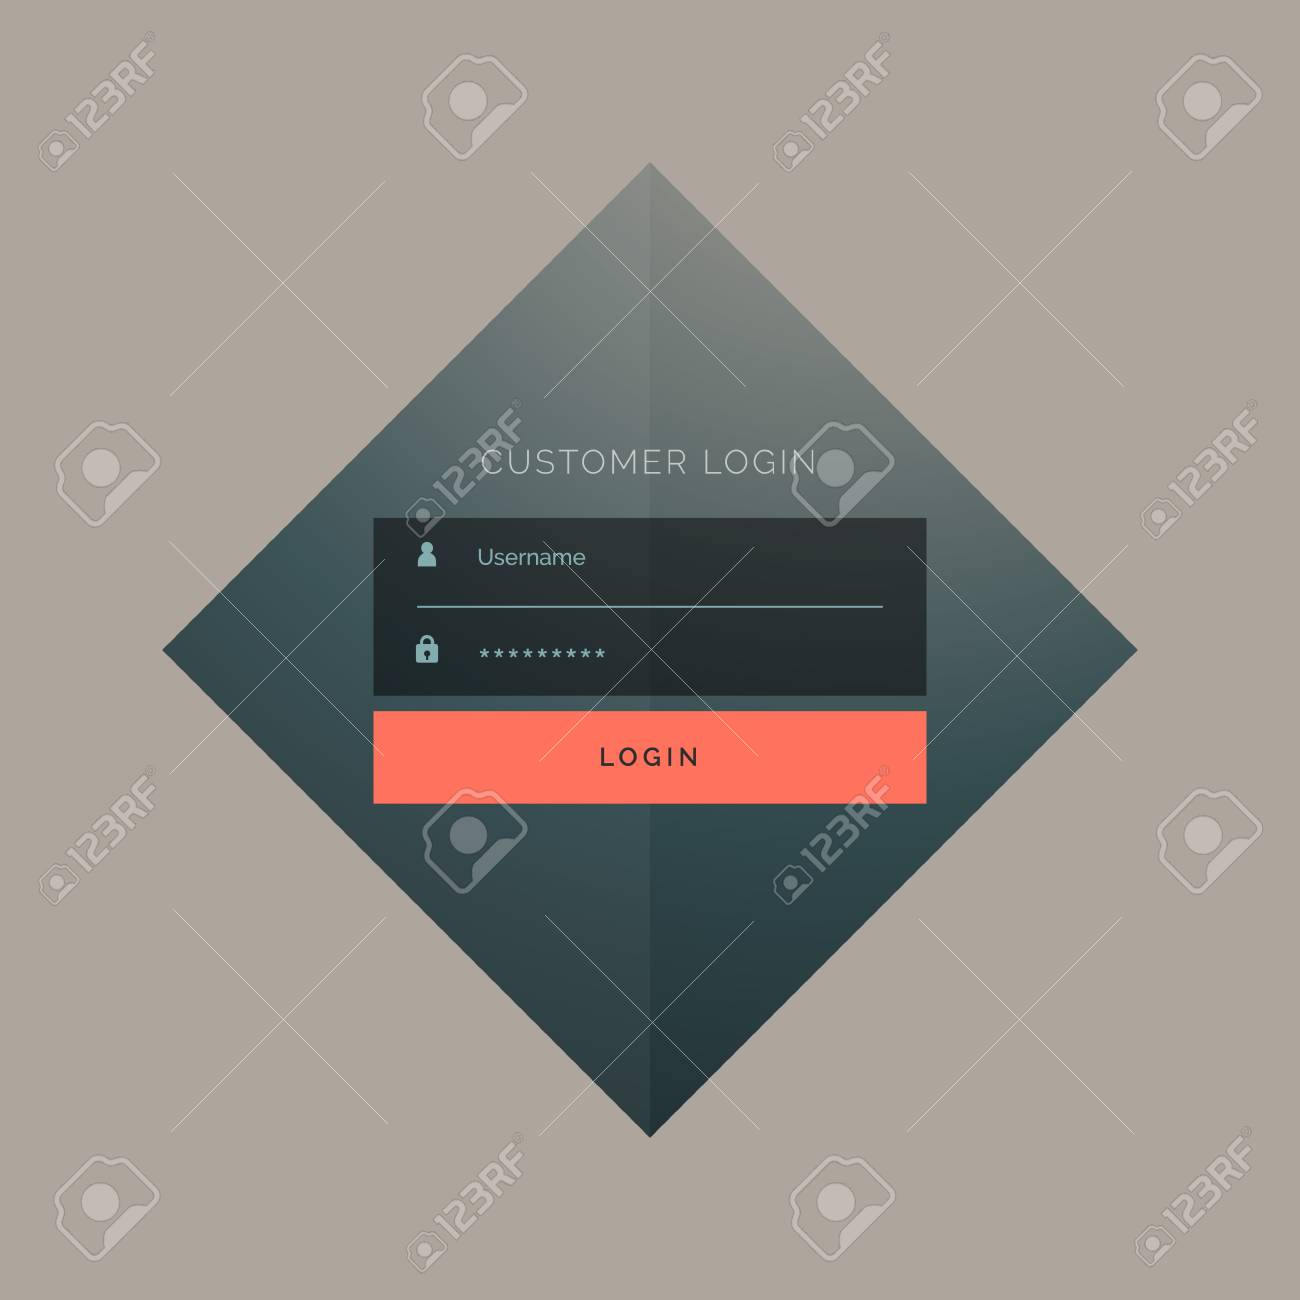 123Rf Password customer login form design with username and password royalty free